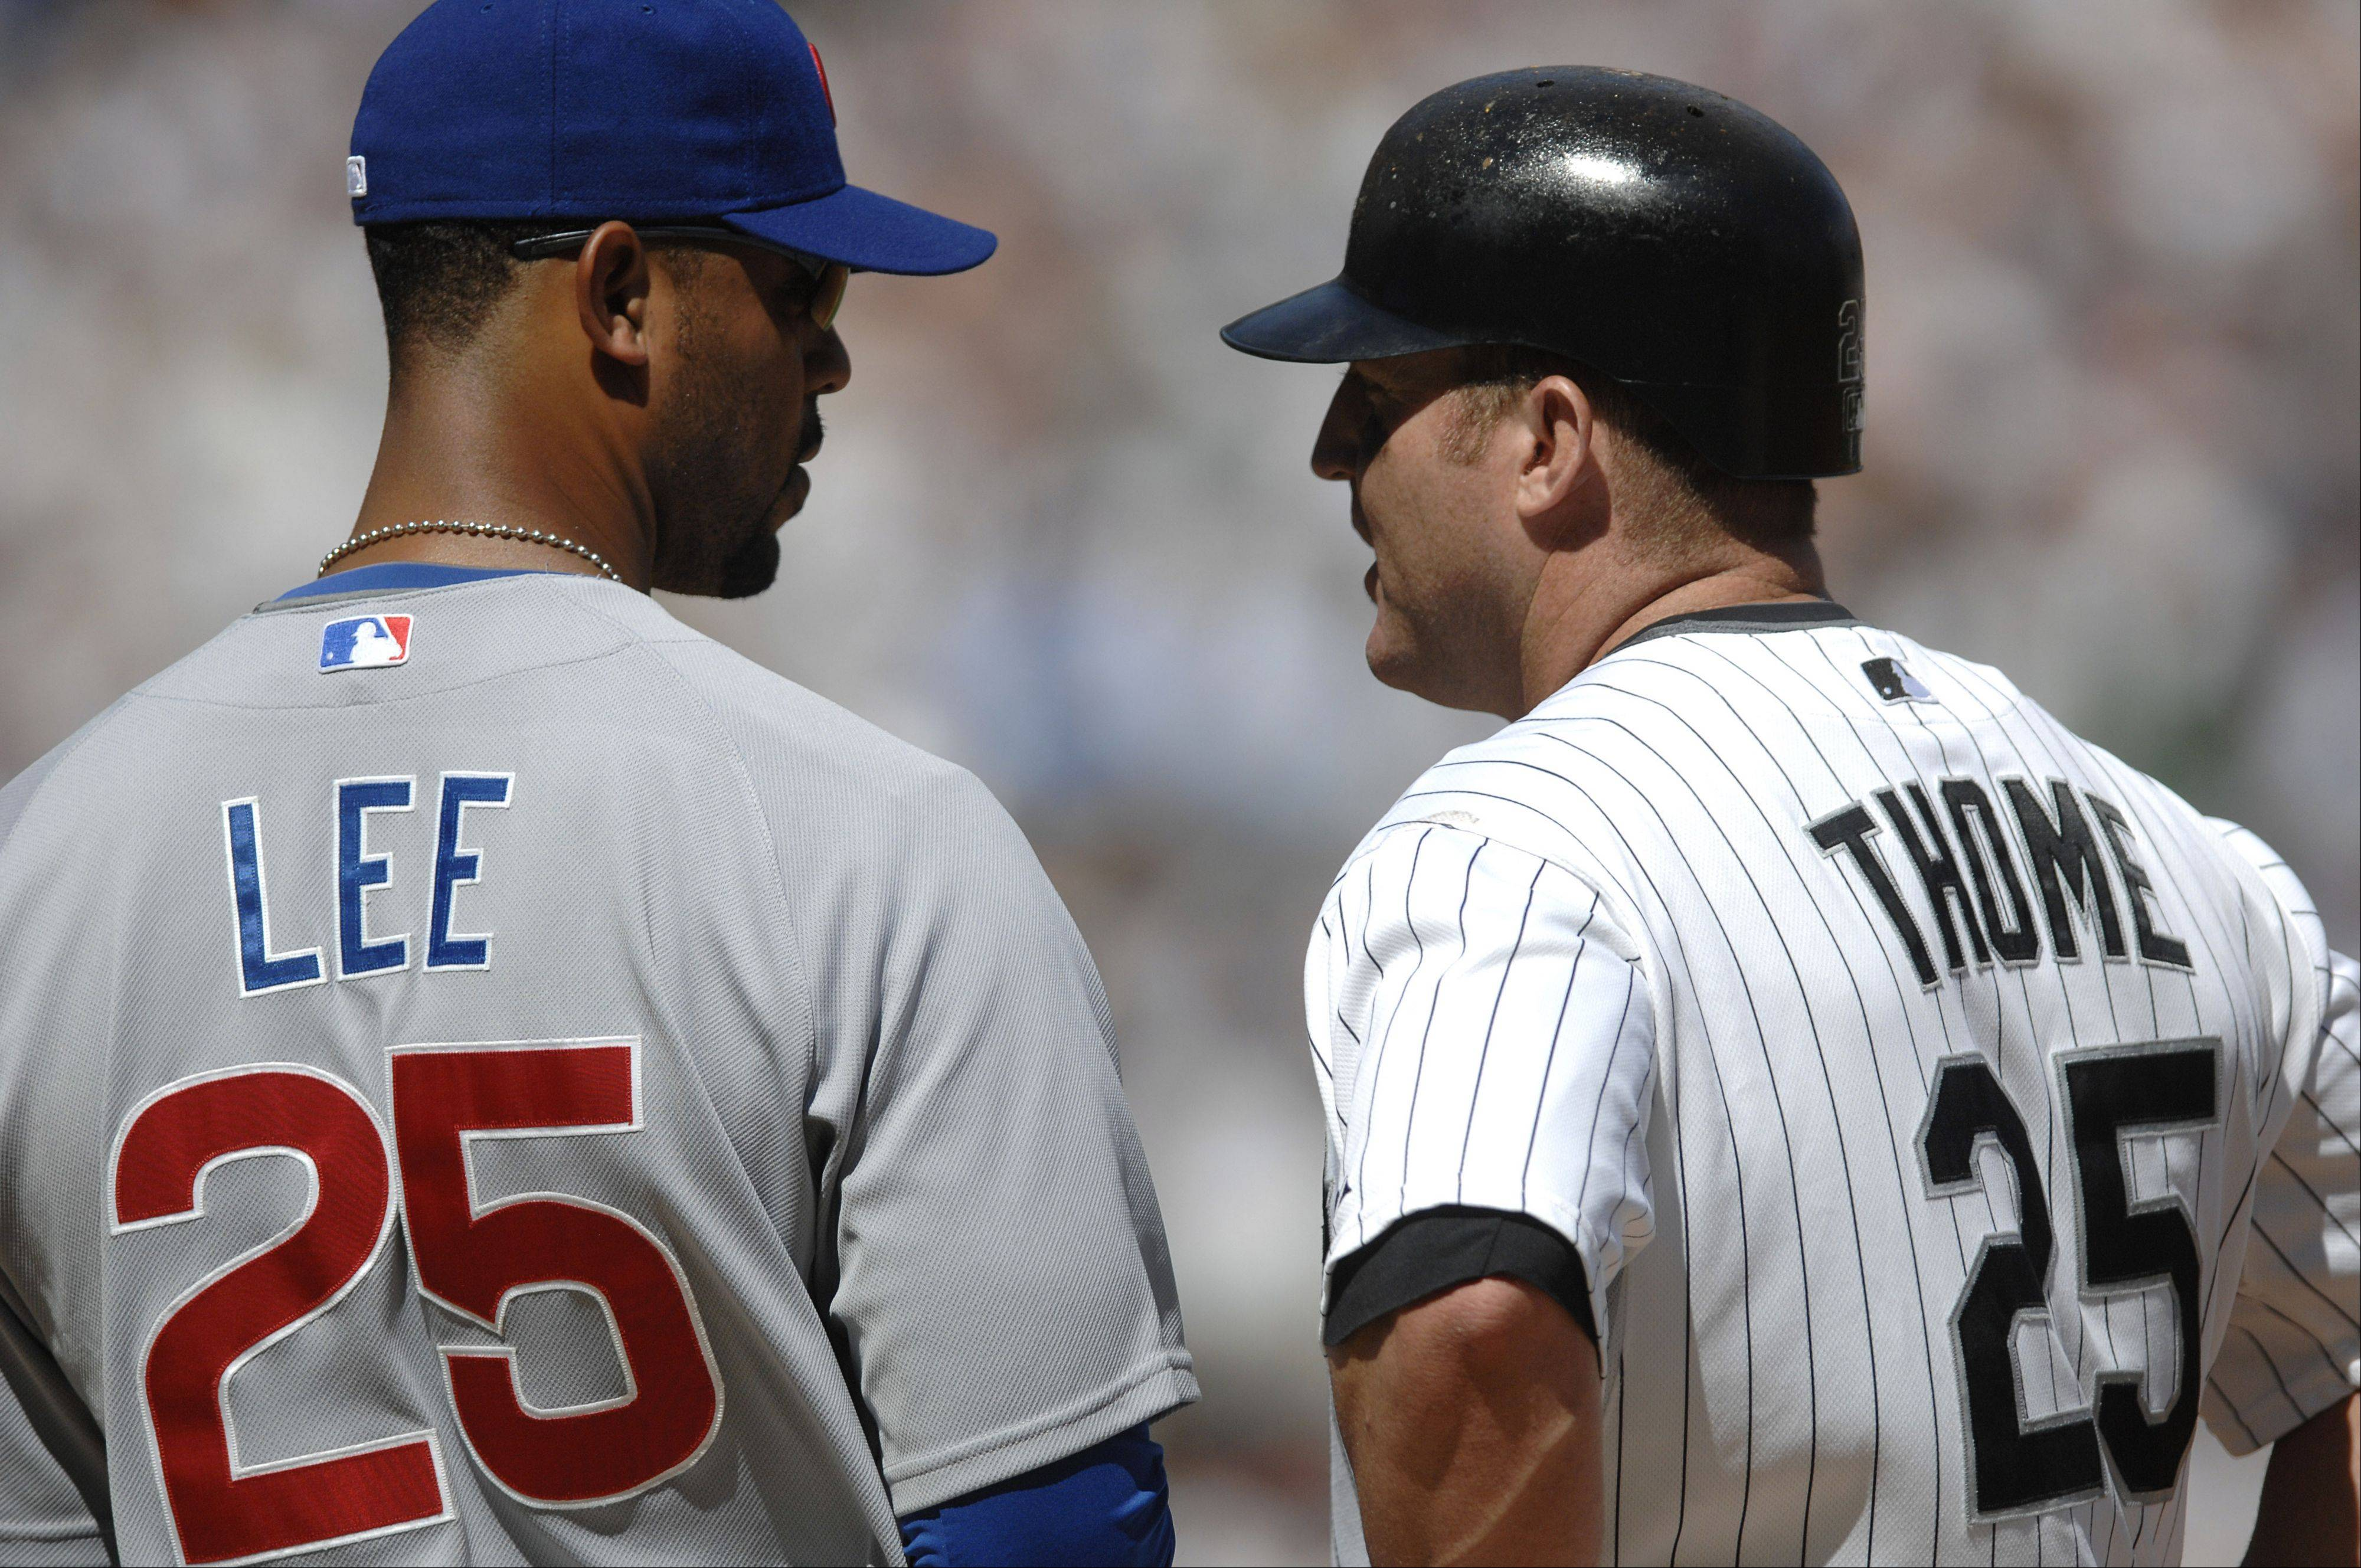 Cubs first baseman Derrek Lee chats with the White Sox's Jim Thome during the first inning of the Crosstown Classic at U.S. Cellular Field on Friday, June 26.